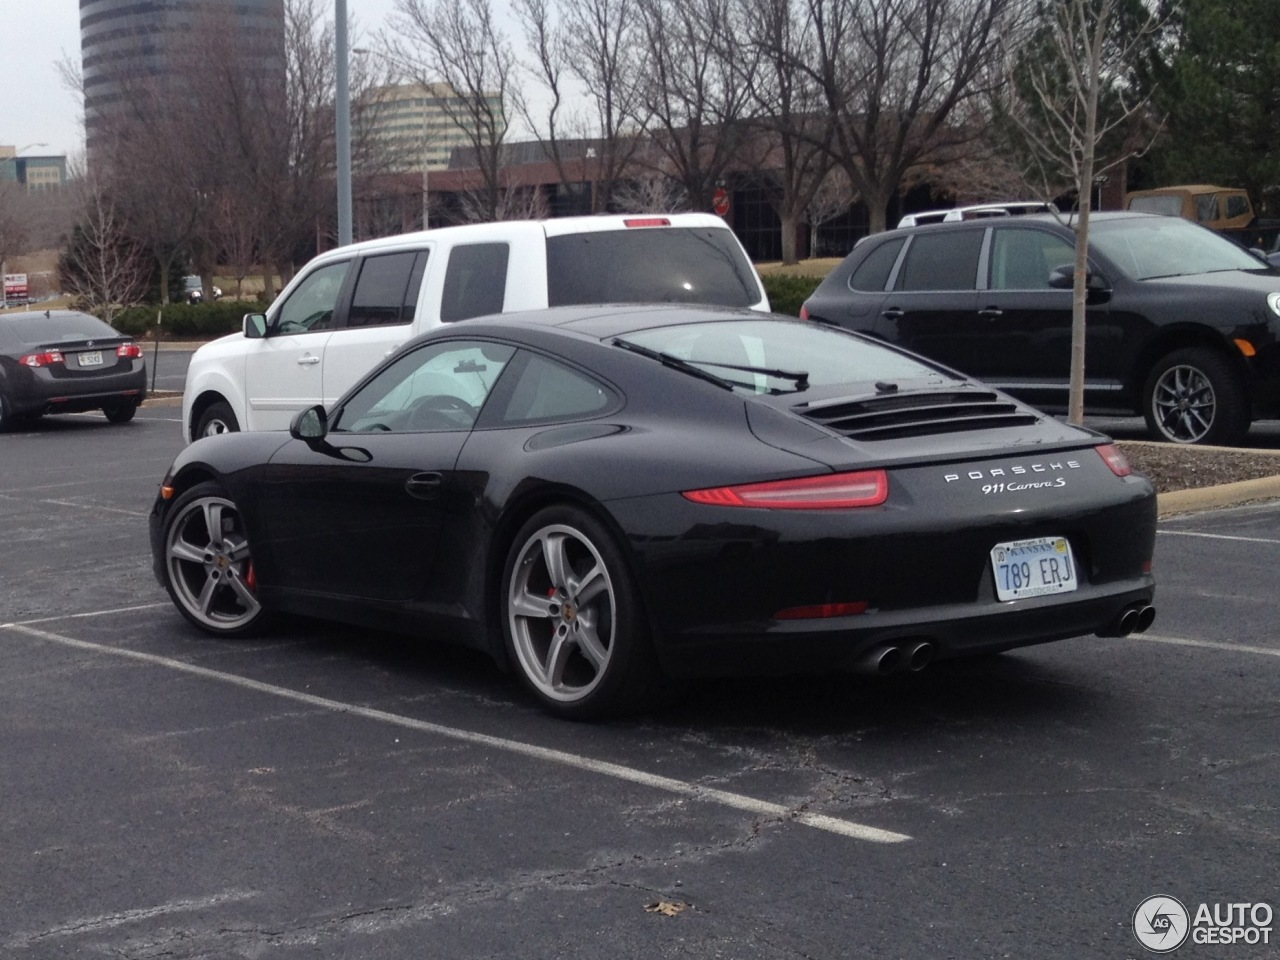 Porsche 991 Carrera S  13 February 2013  Autogespot